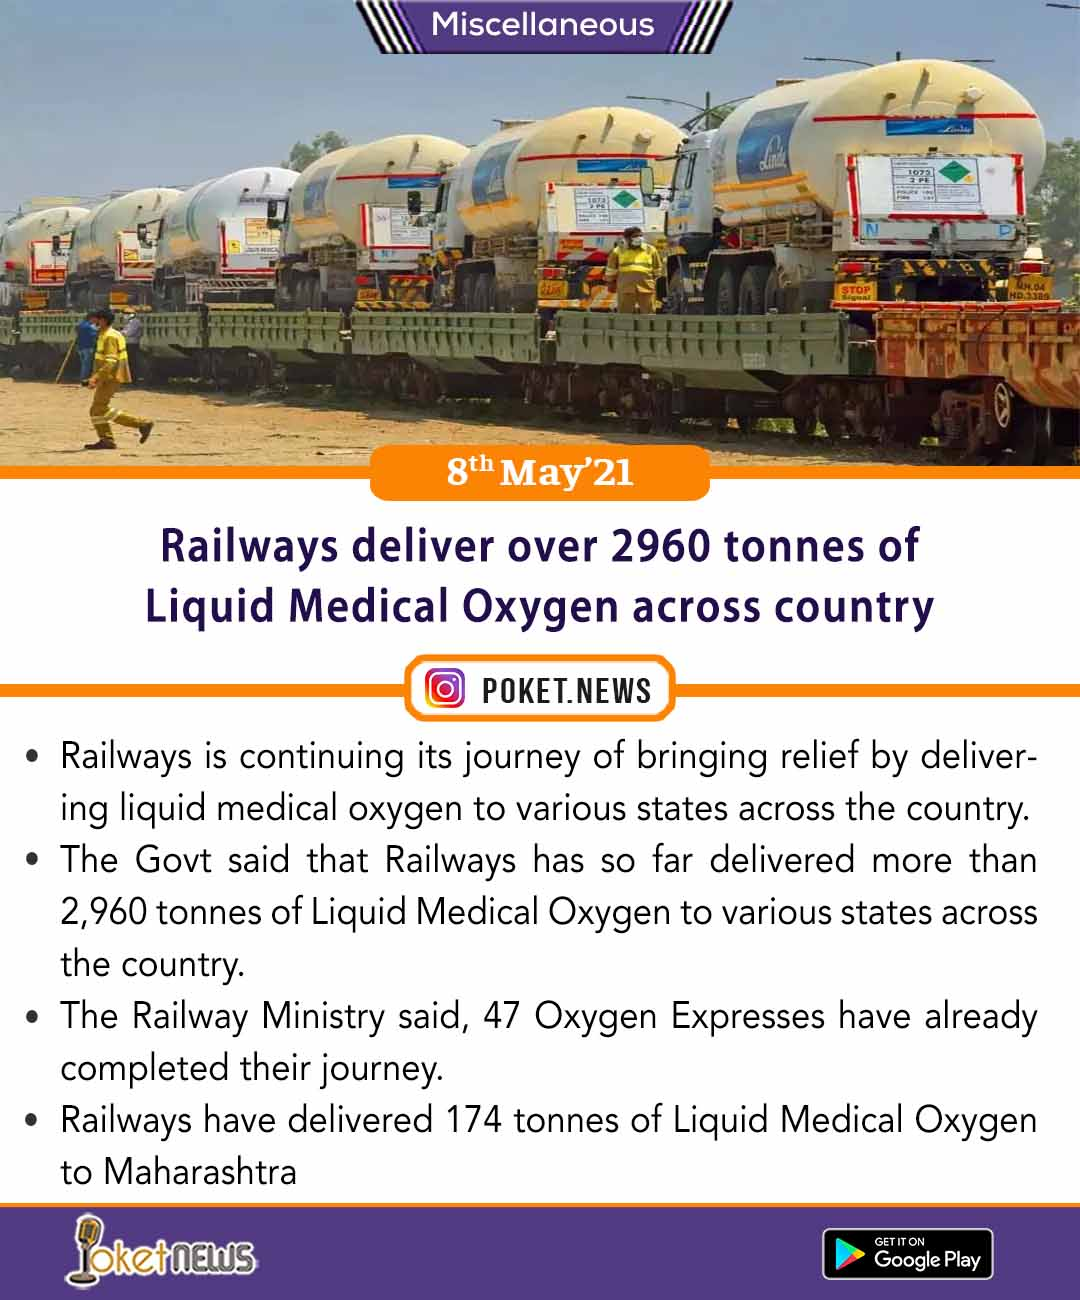 Railways deliver over 2960 tonnes of Liquid Medical Oxygen across country